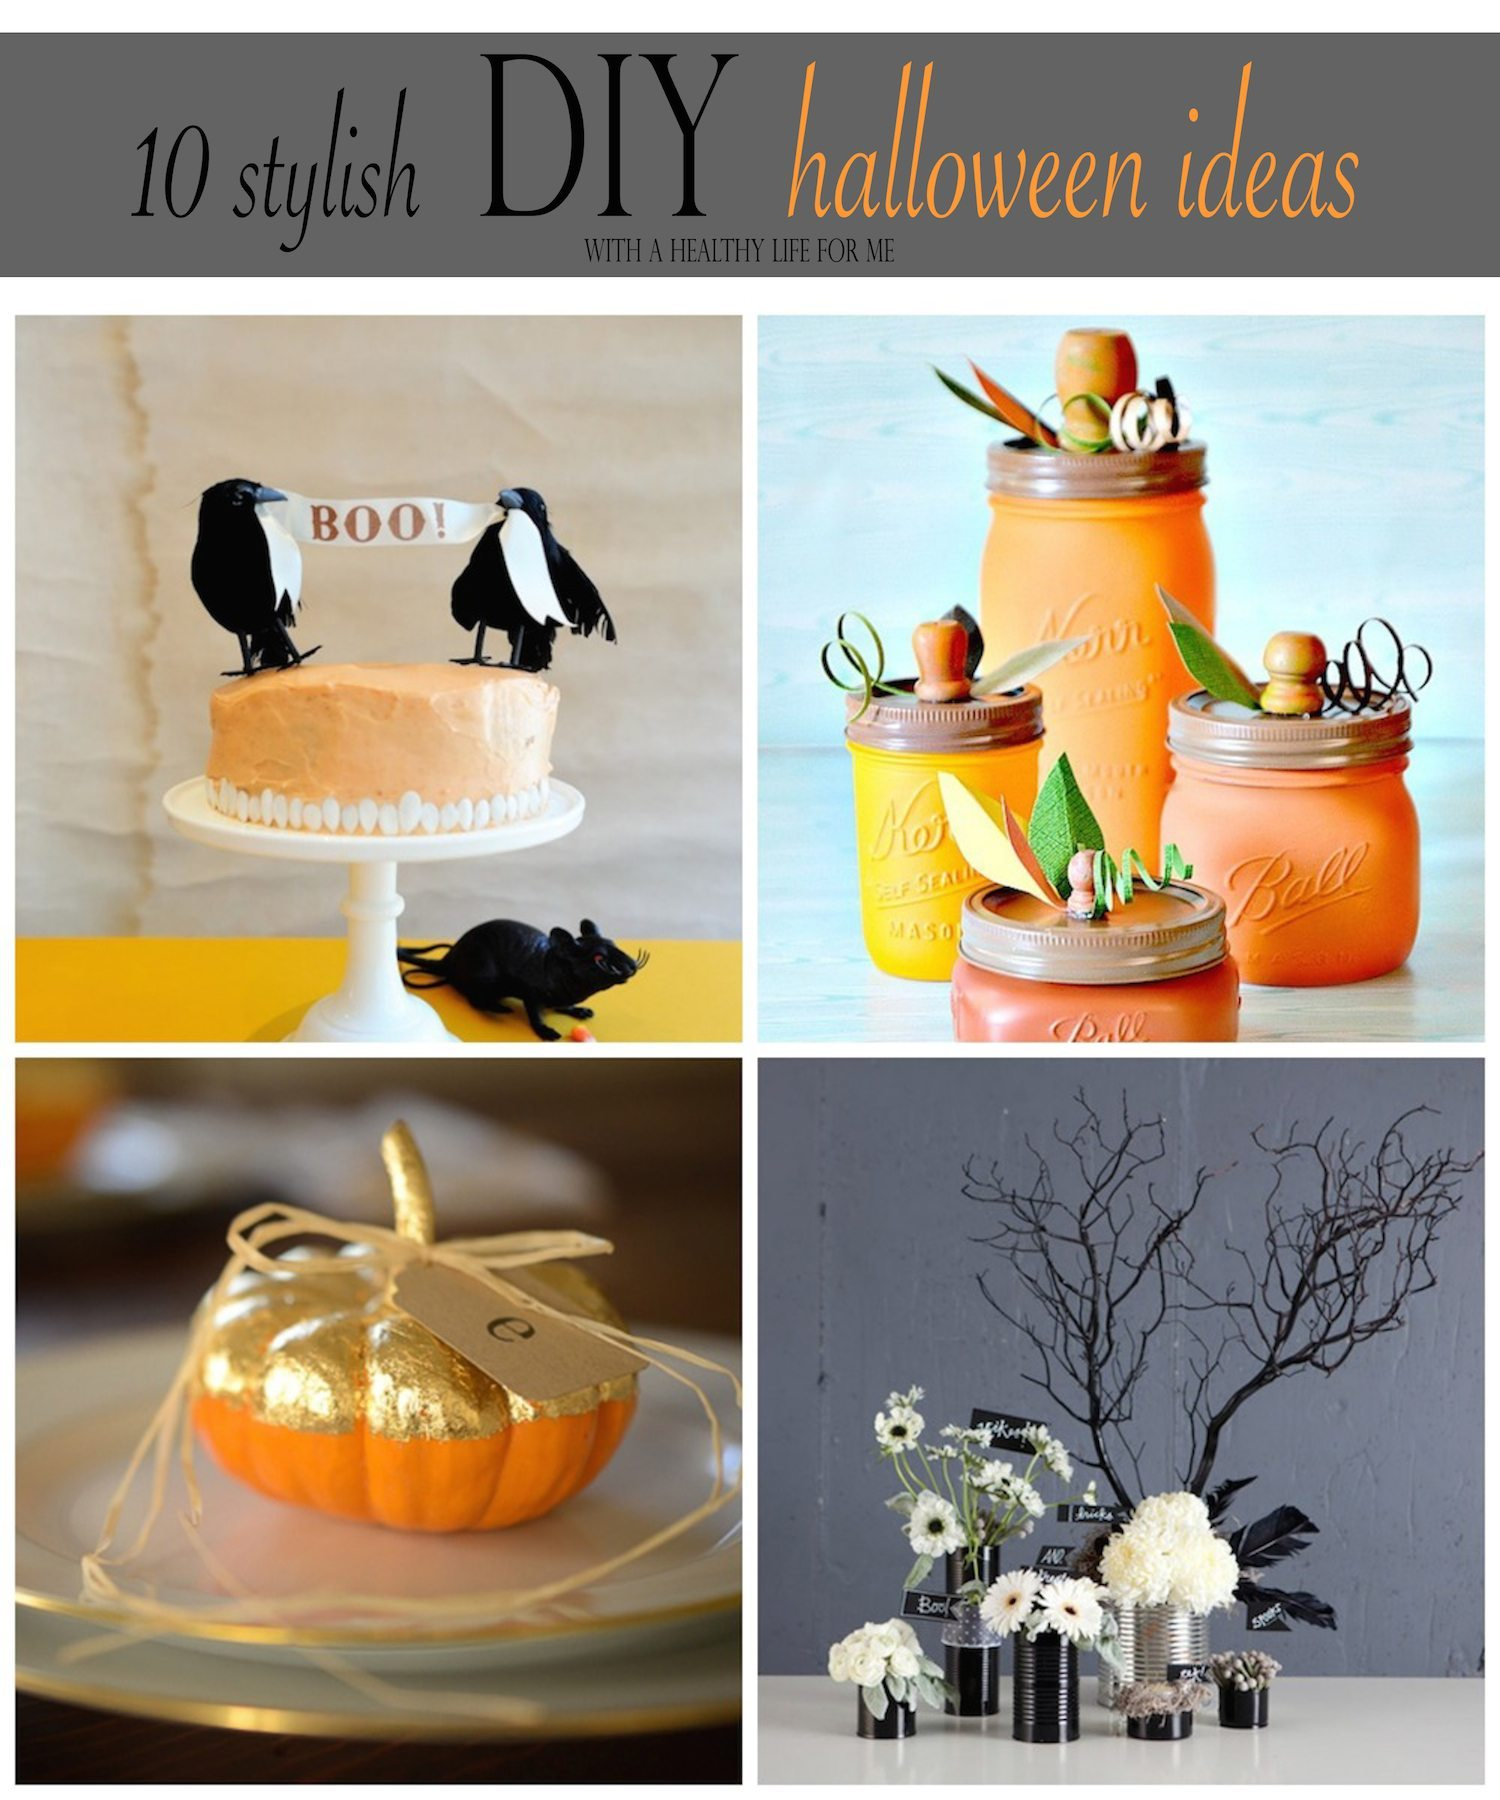 10 Stylish DIY Halloween Ideas A Healthy Life For Me